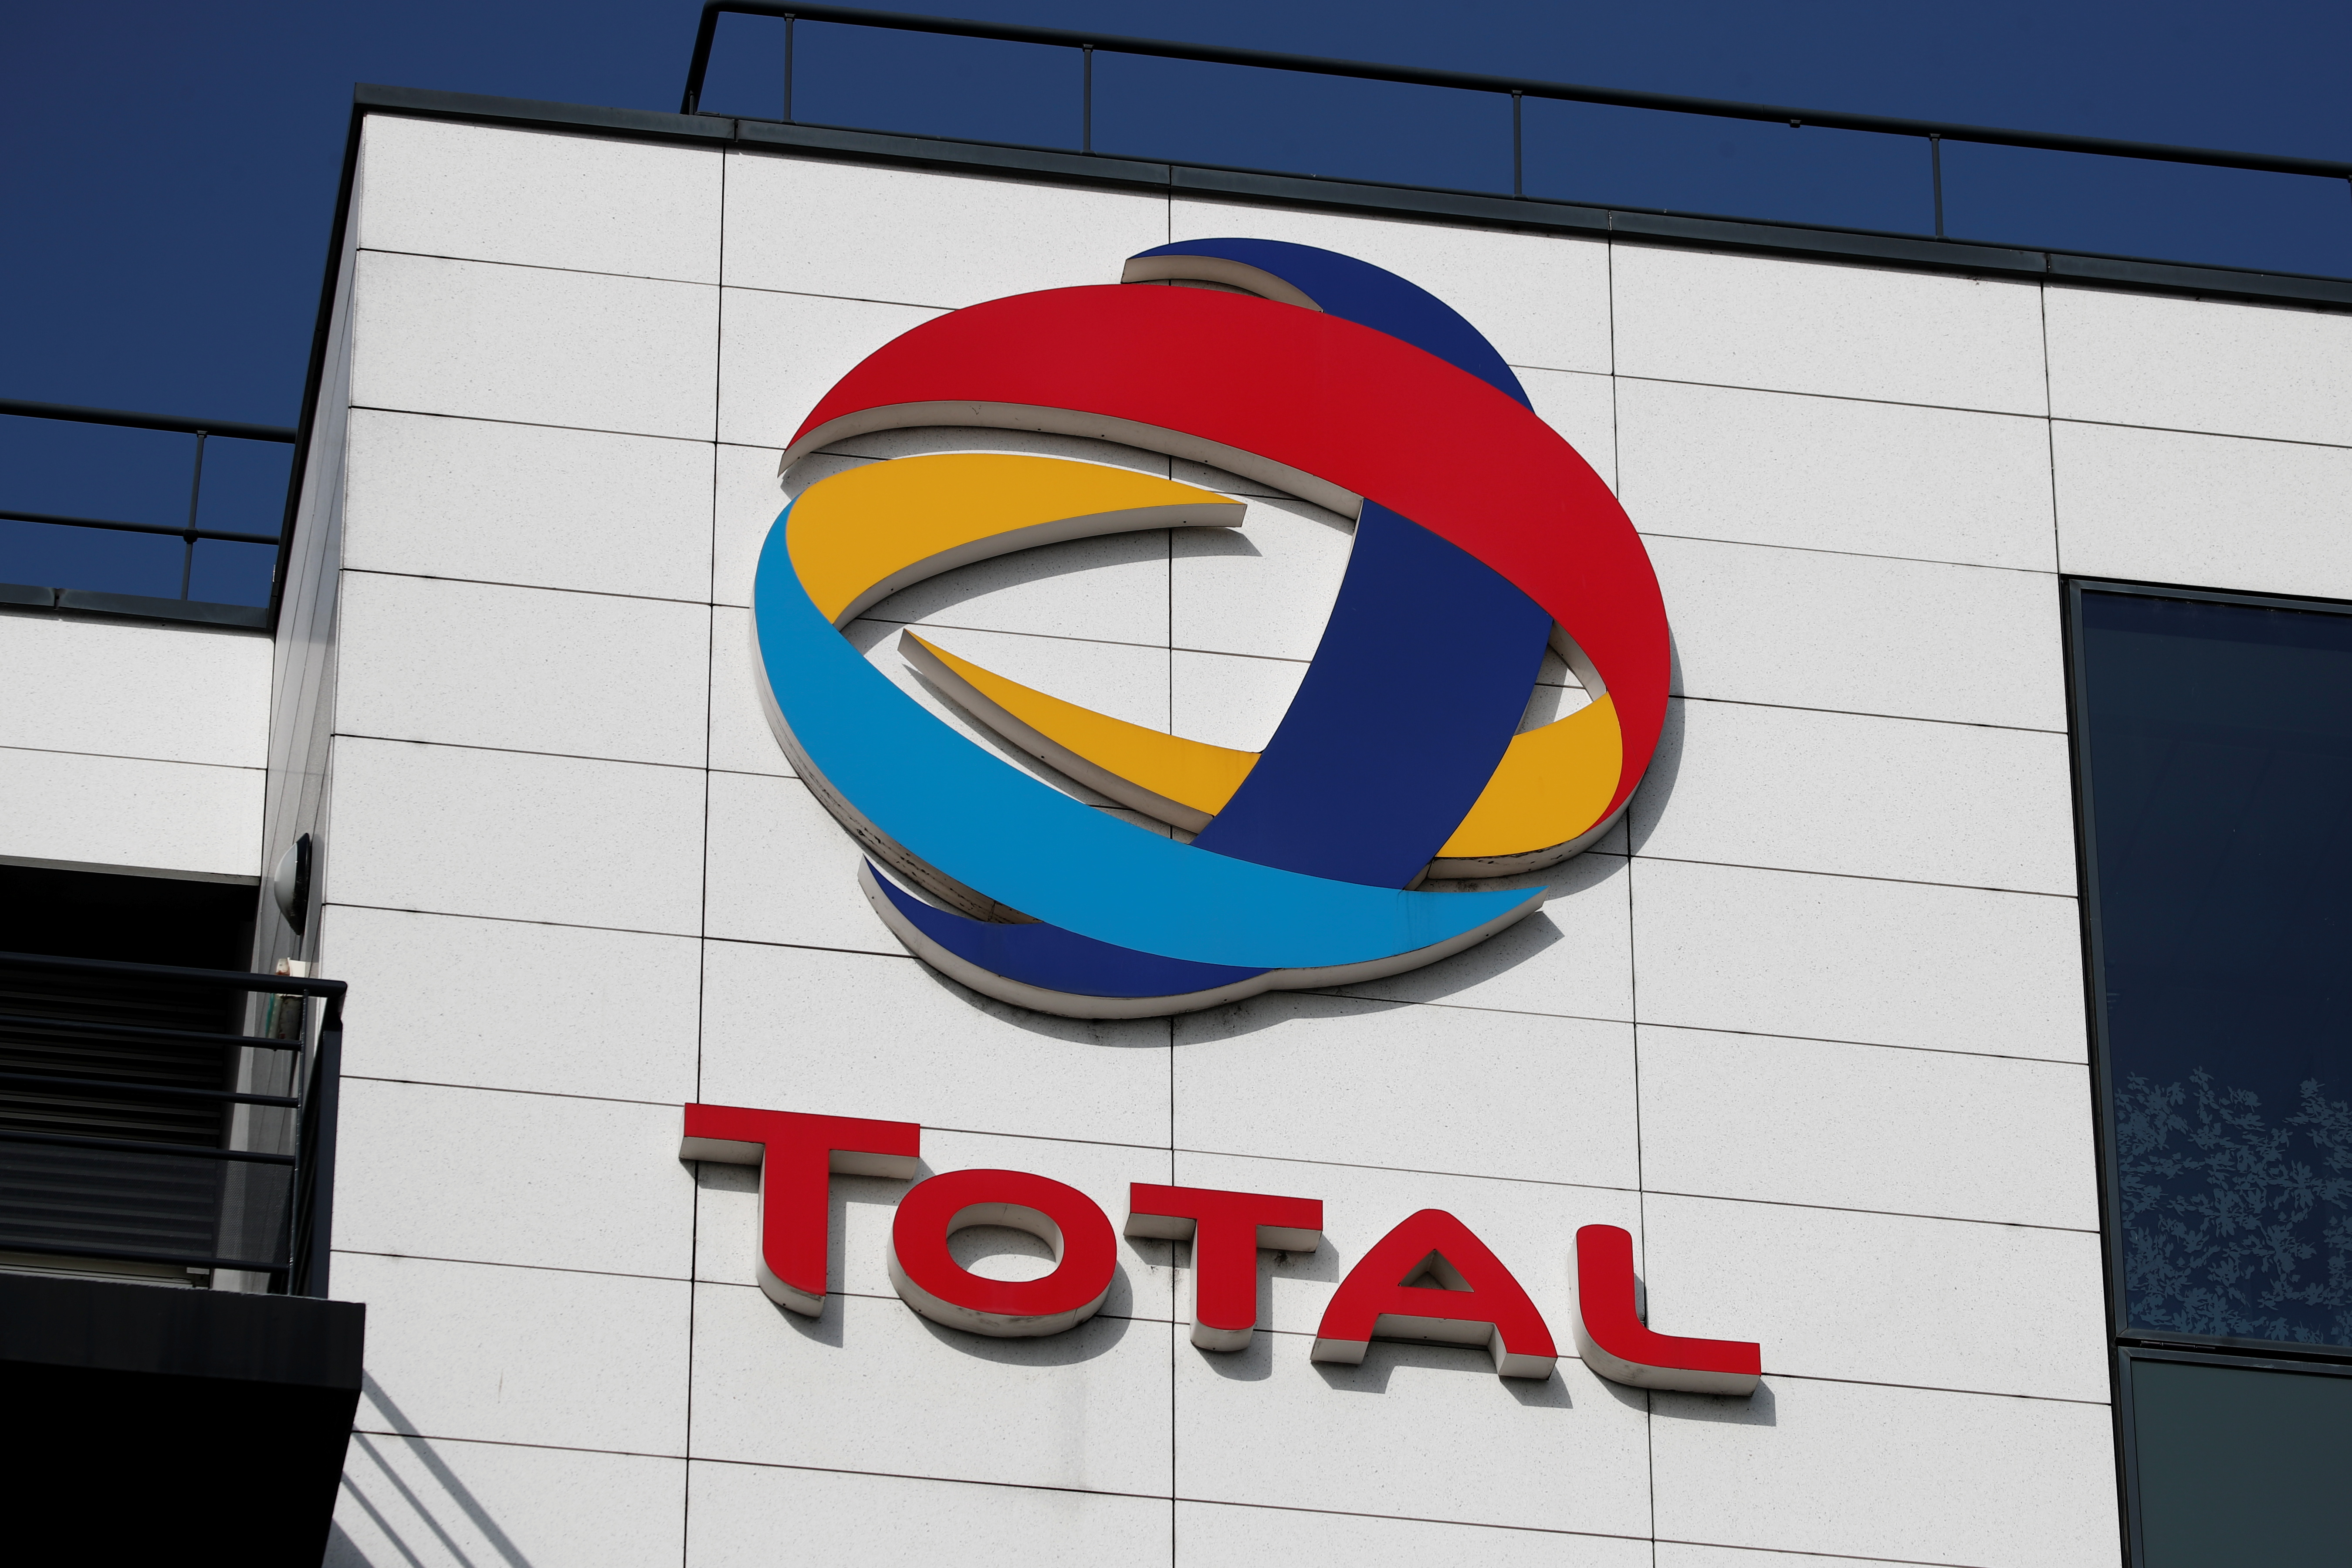 The logo of French oil and gas company Total is seen in Rueil-Malmaison, near Paris, France, March 2, 2021. REUTERS/Benoit Tessier